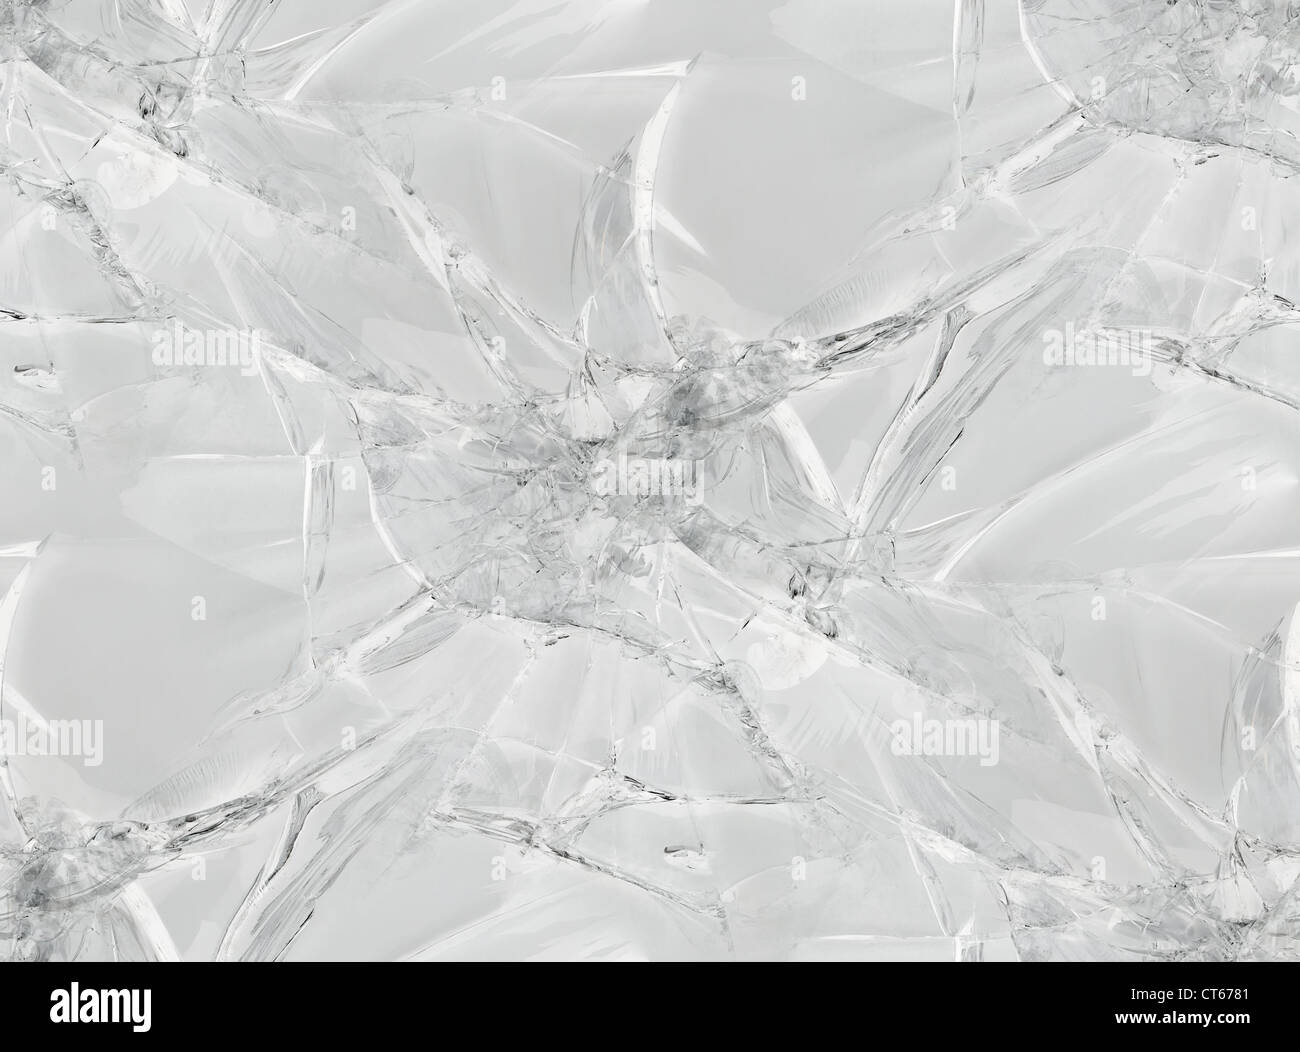 Gray Cracked Glass Seamless Pattern Texture - Stock Image